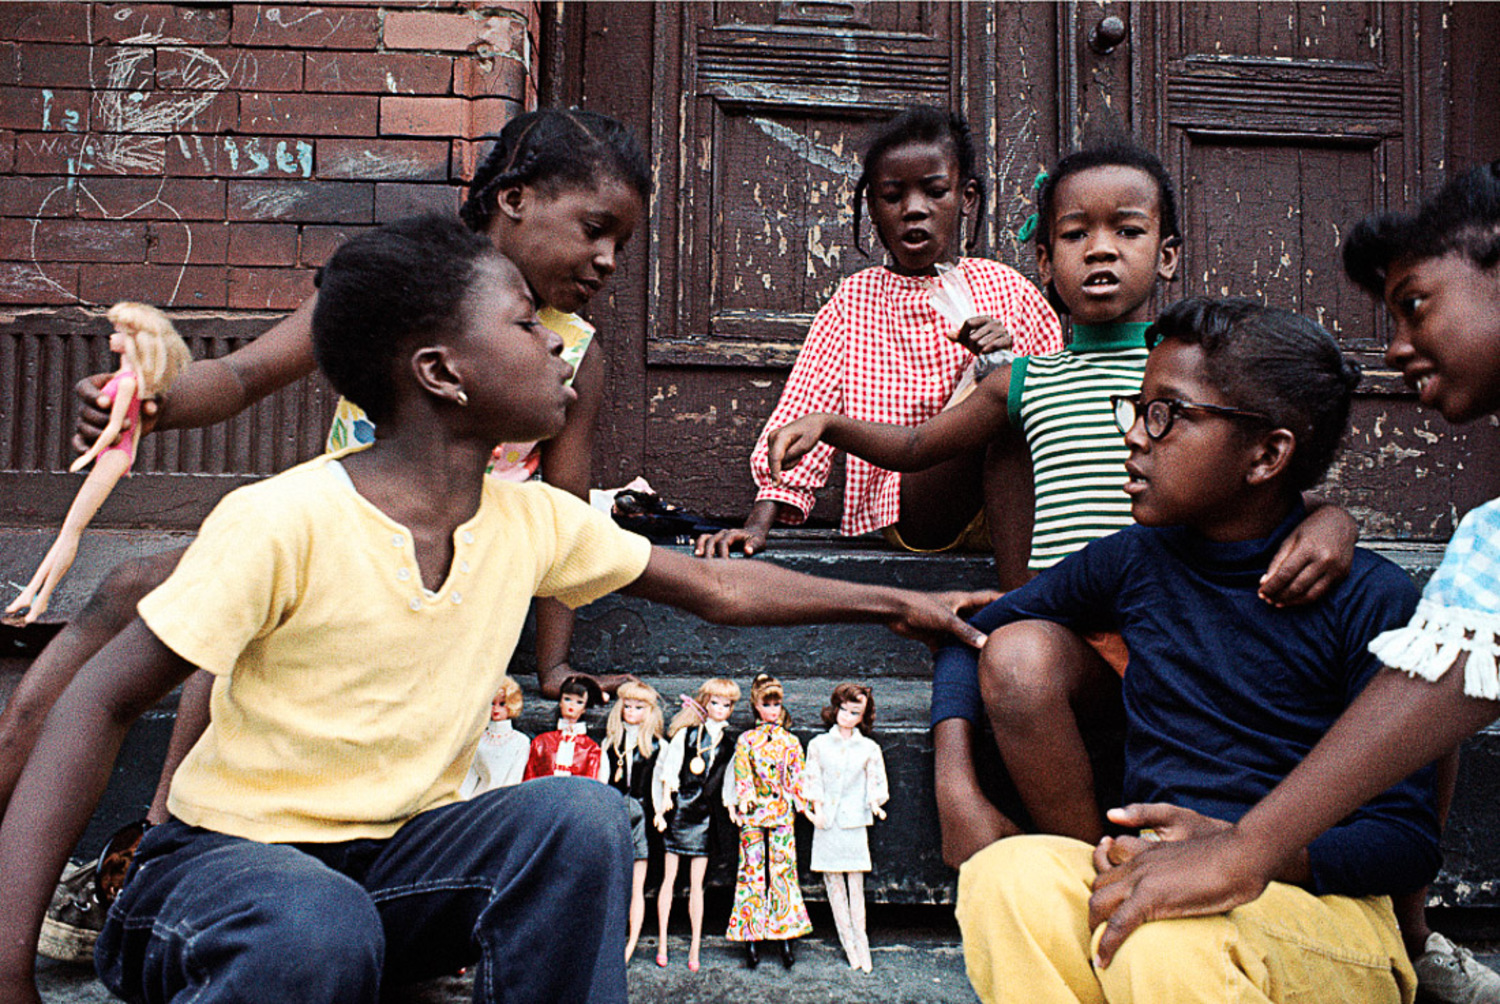 1970 Girls with Barbies, East Harlem.